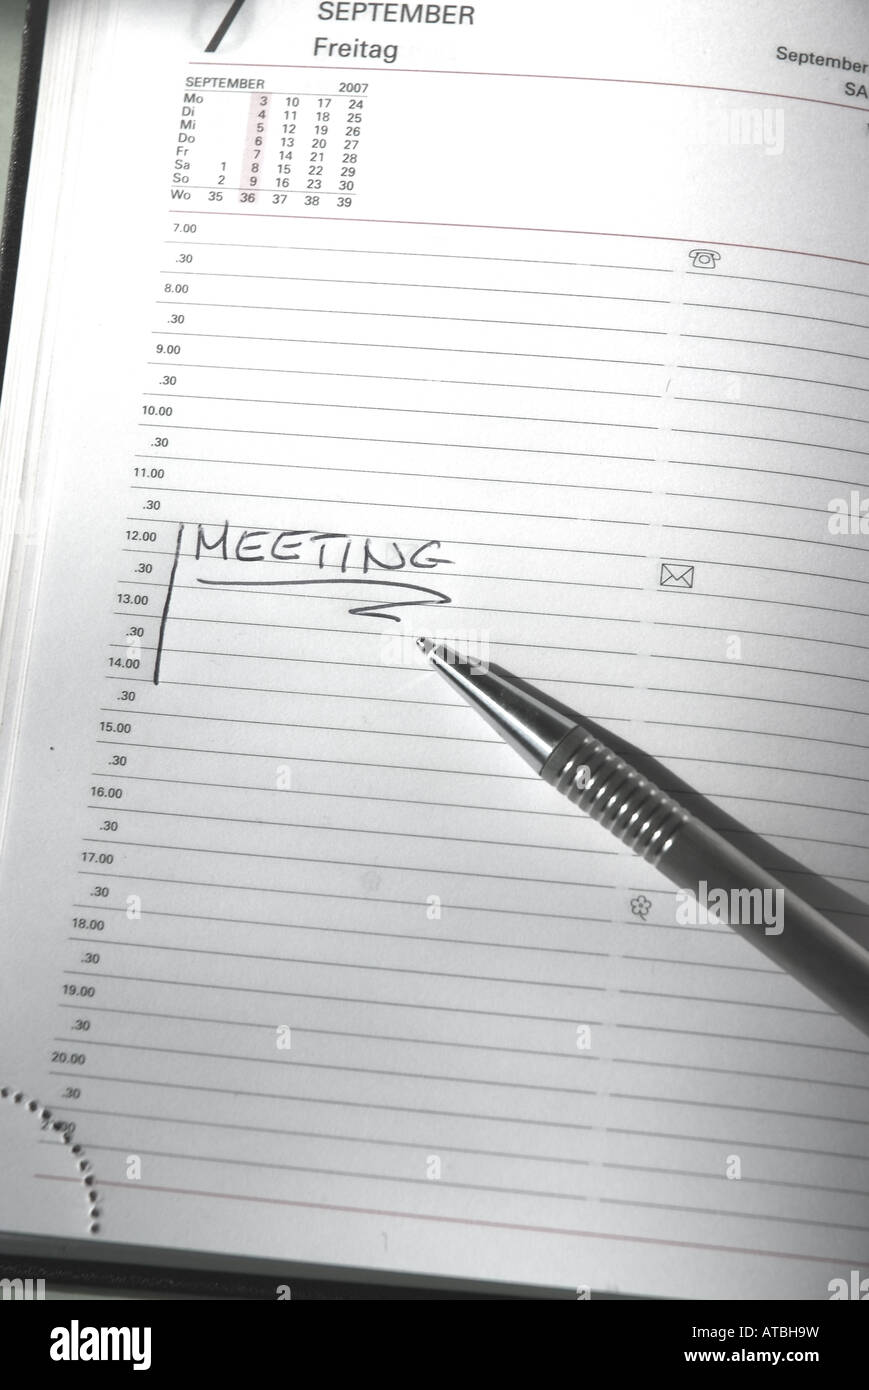 Meeting written on the white paper of a timer with a pen - Stock Image